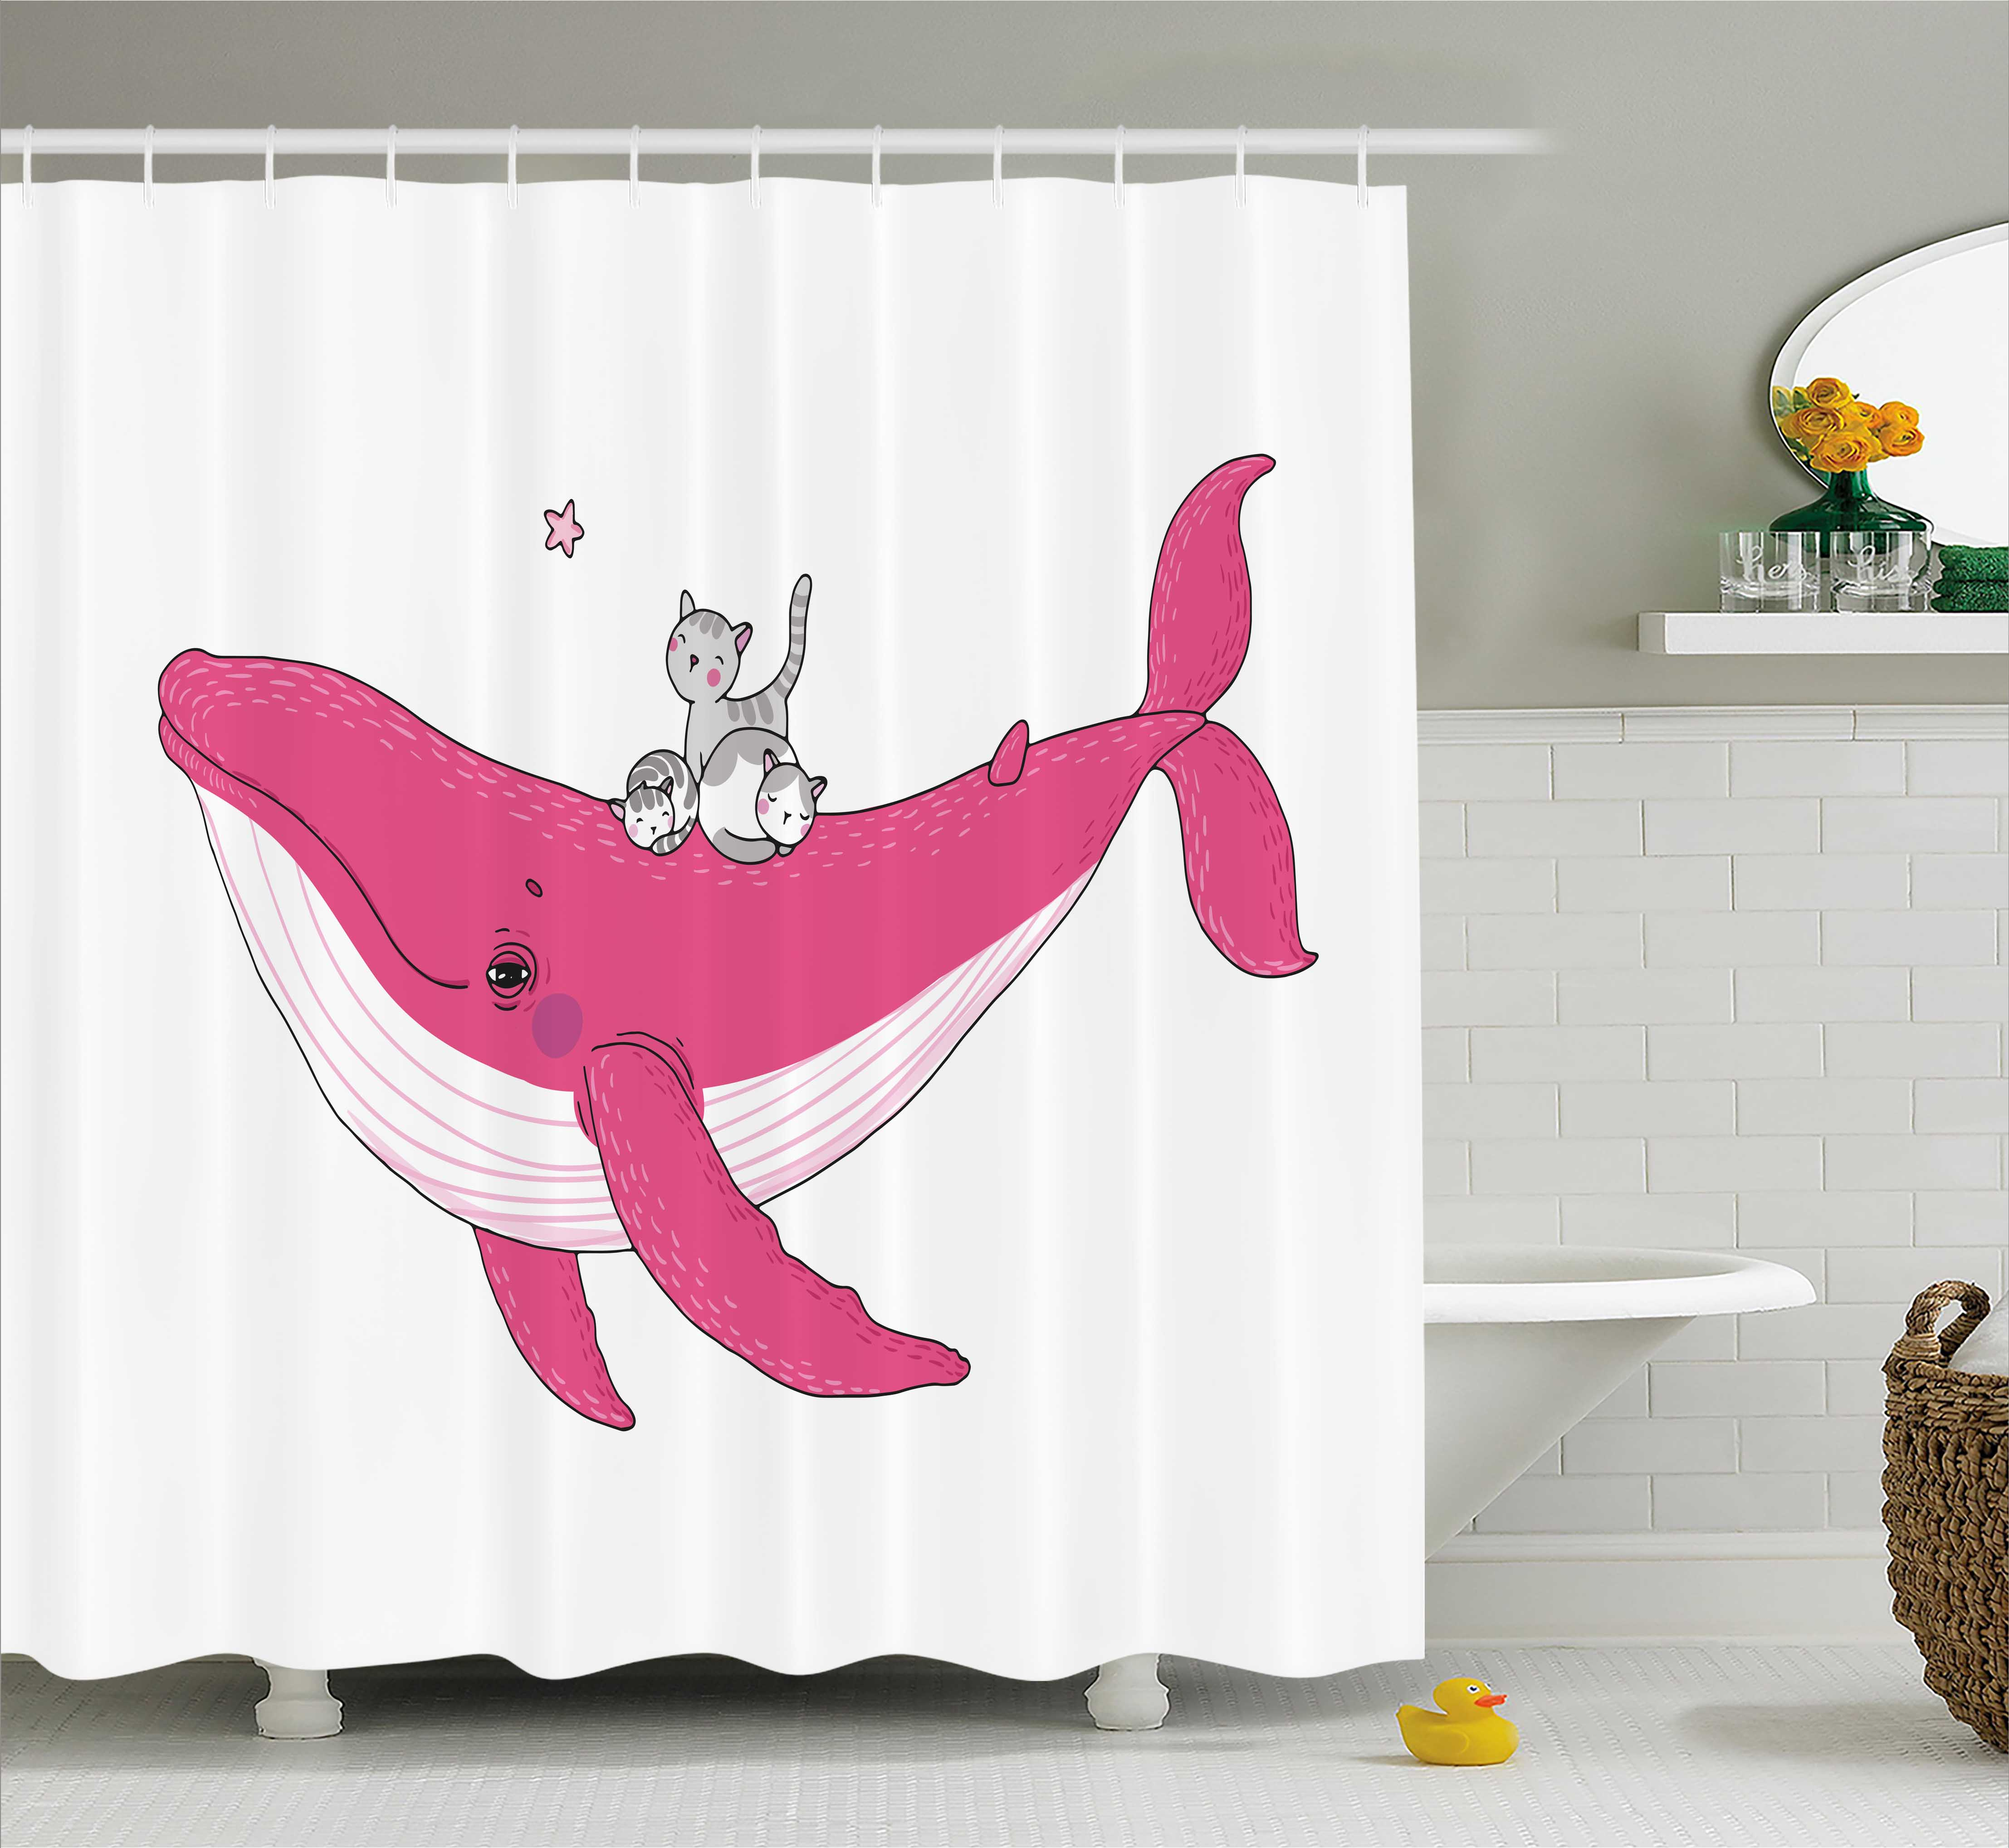 Whale Shower Curtain, Three Cute Little Grey Kitten on Big Fish Aquatic Star Magic Animal Underwater Kids Theme, Fabric Bathroom Set with Hooks, 69W X 75L Inches Long, Pink, by Ambesonne